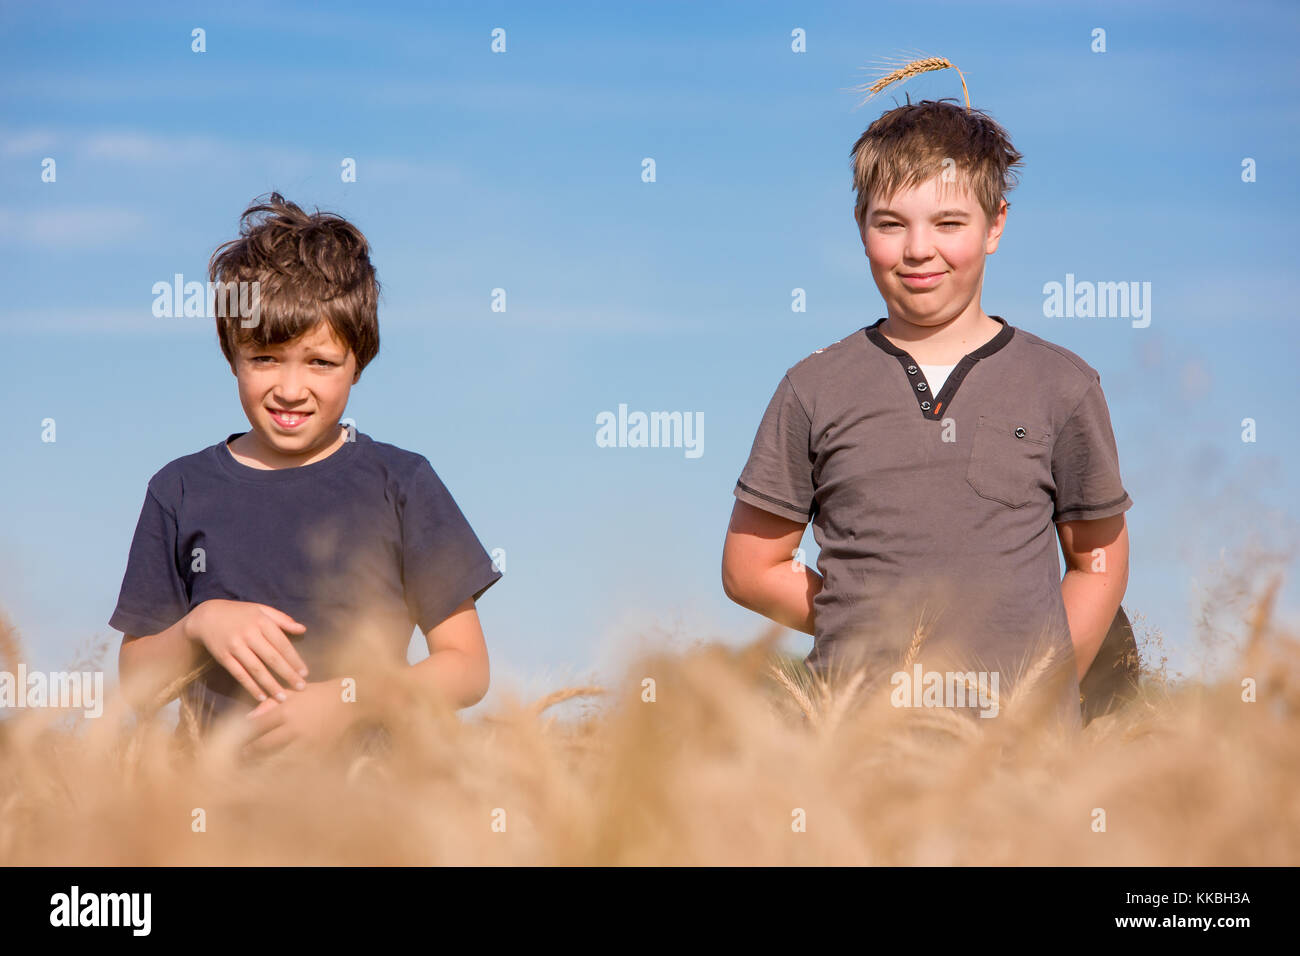 Brothers, boys hiding and playing in green corn, barley or wheat. Cute kids, children on the field in the summer - Stock Image